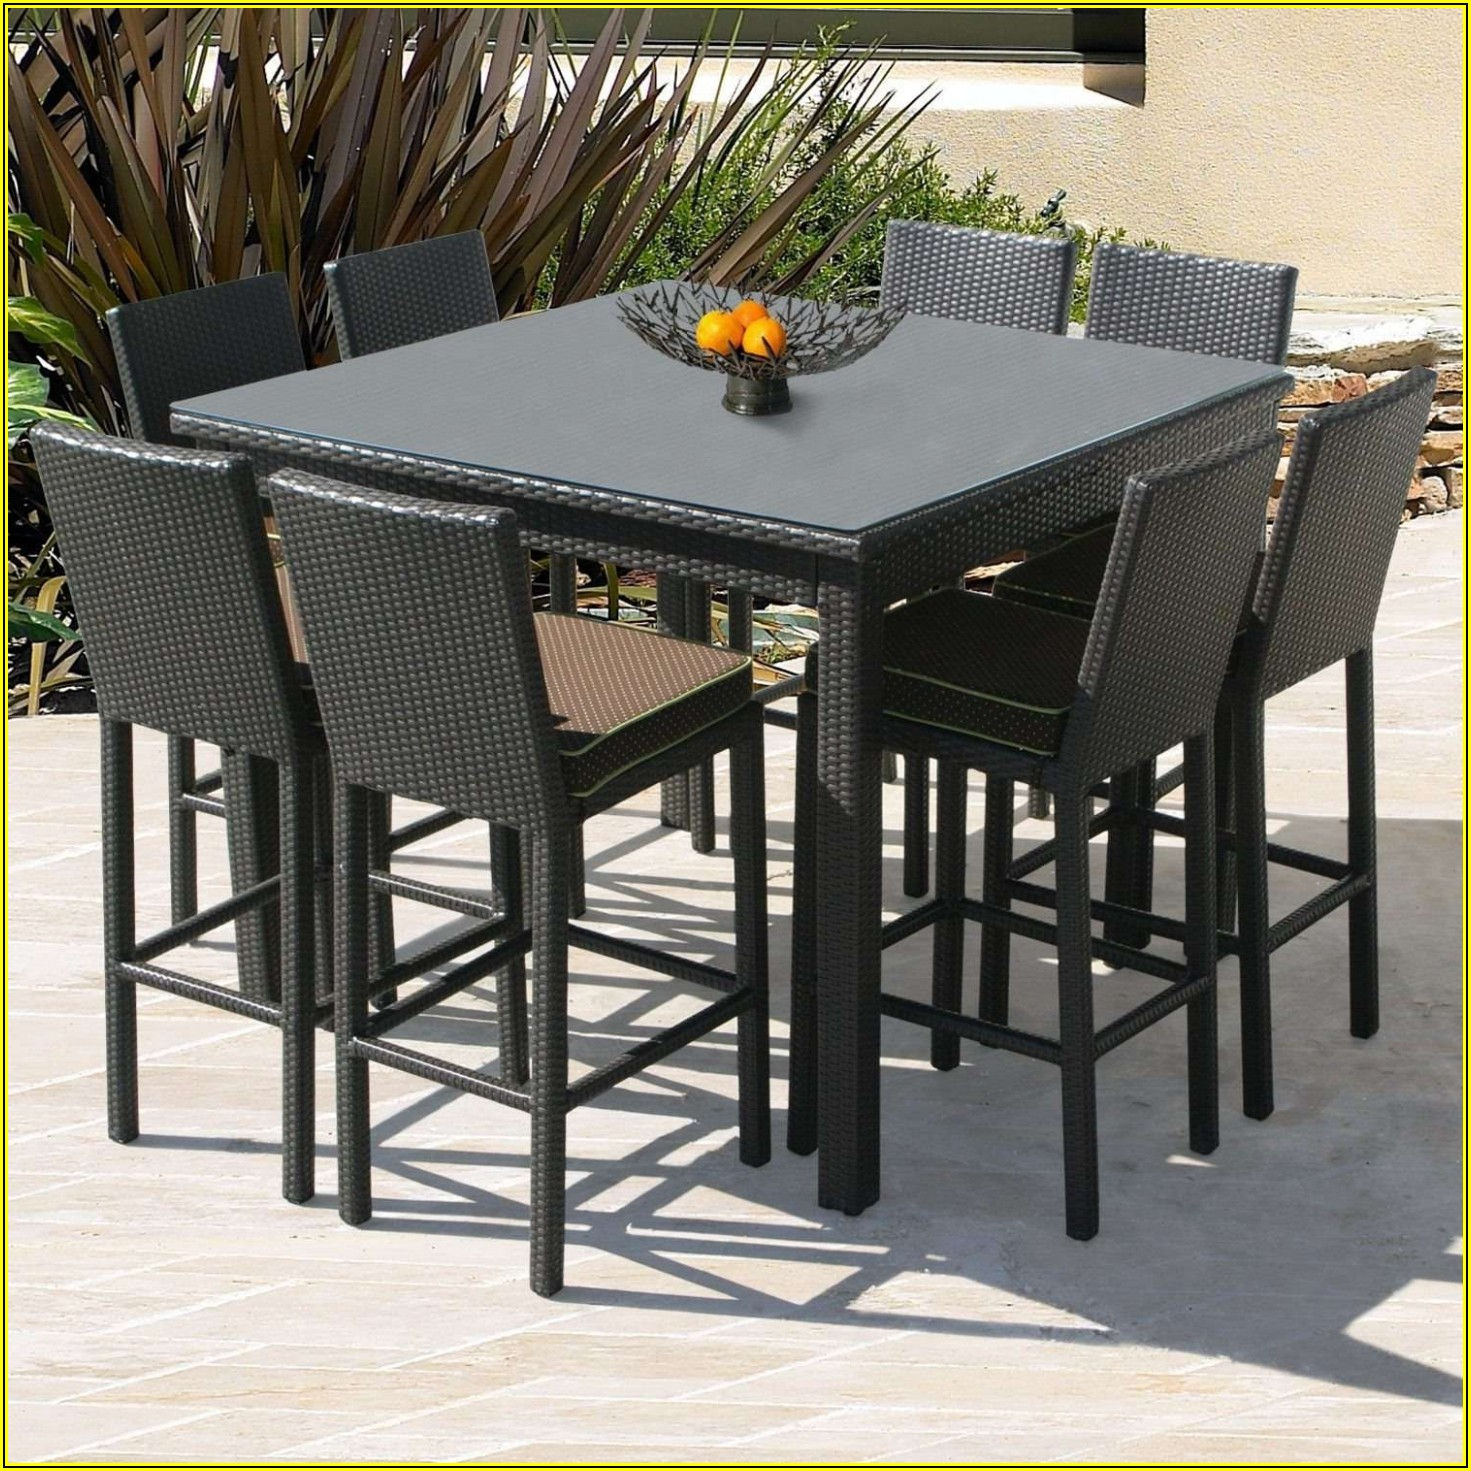 Outdoor Patio Pub Table And Chairs